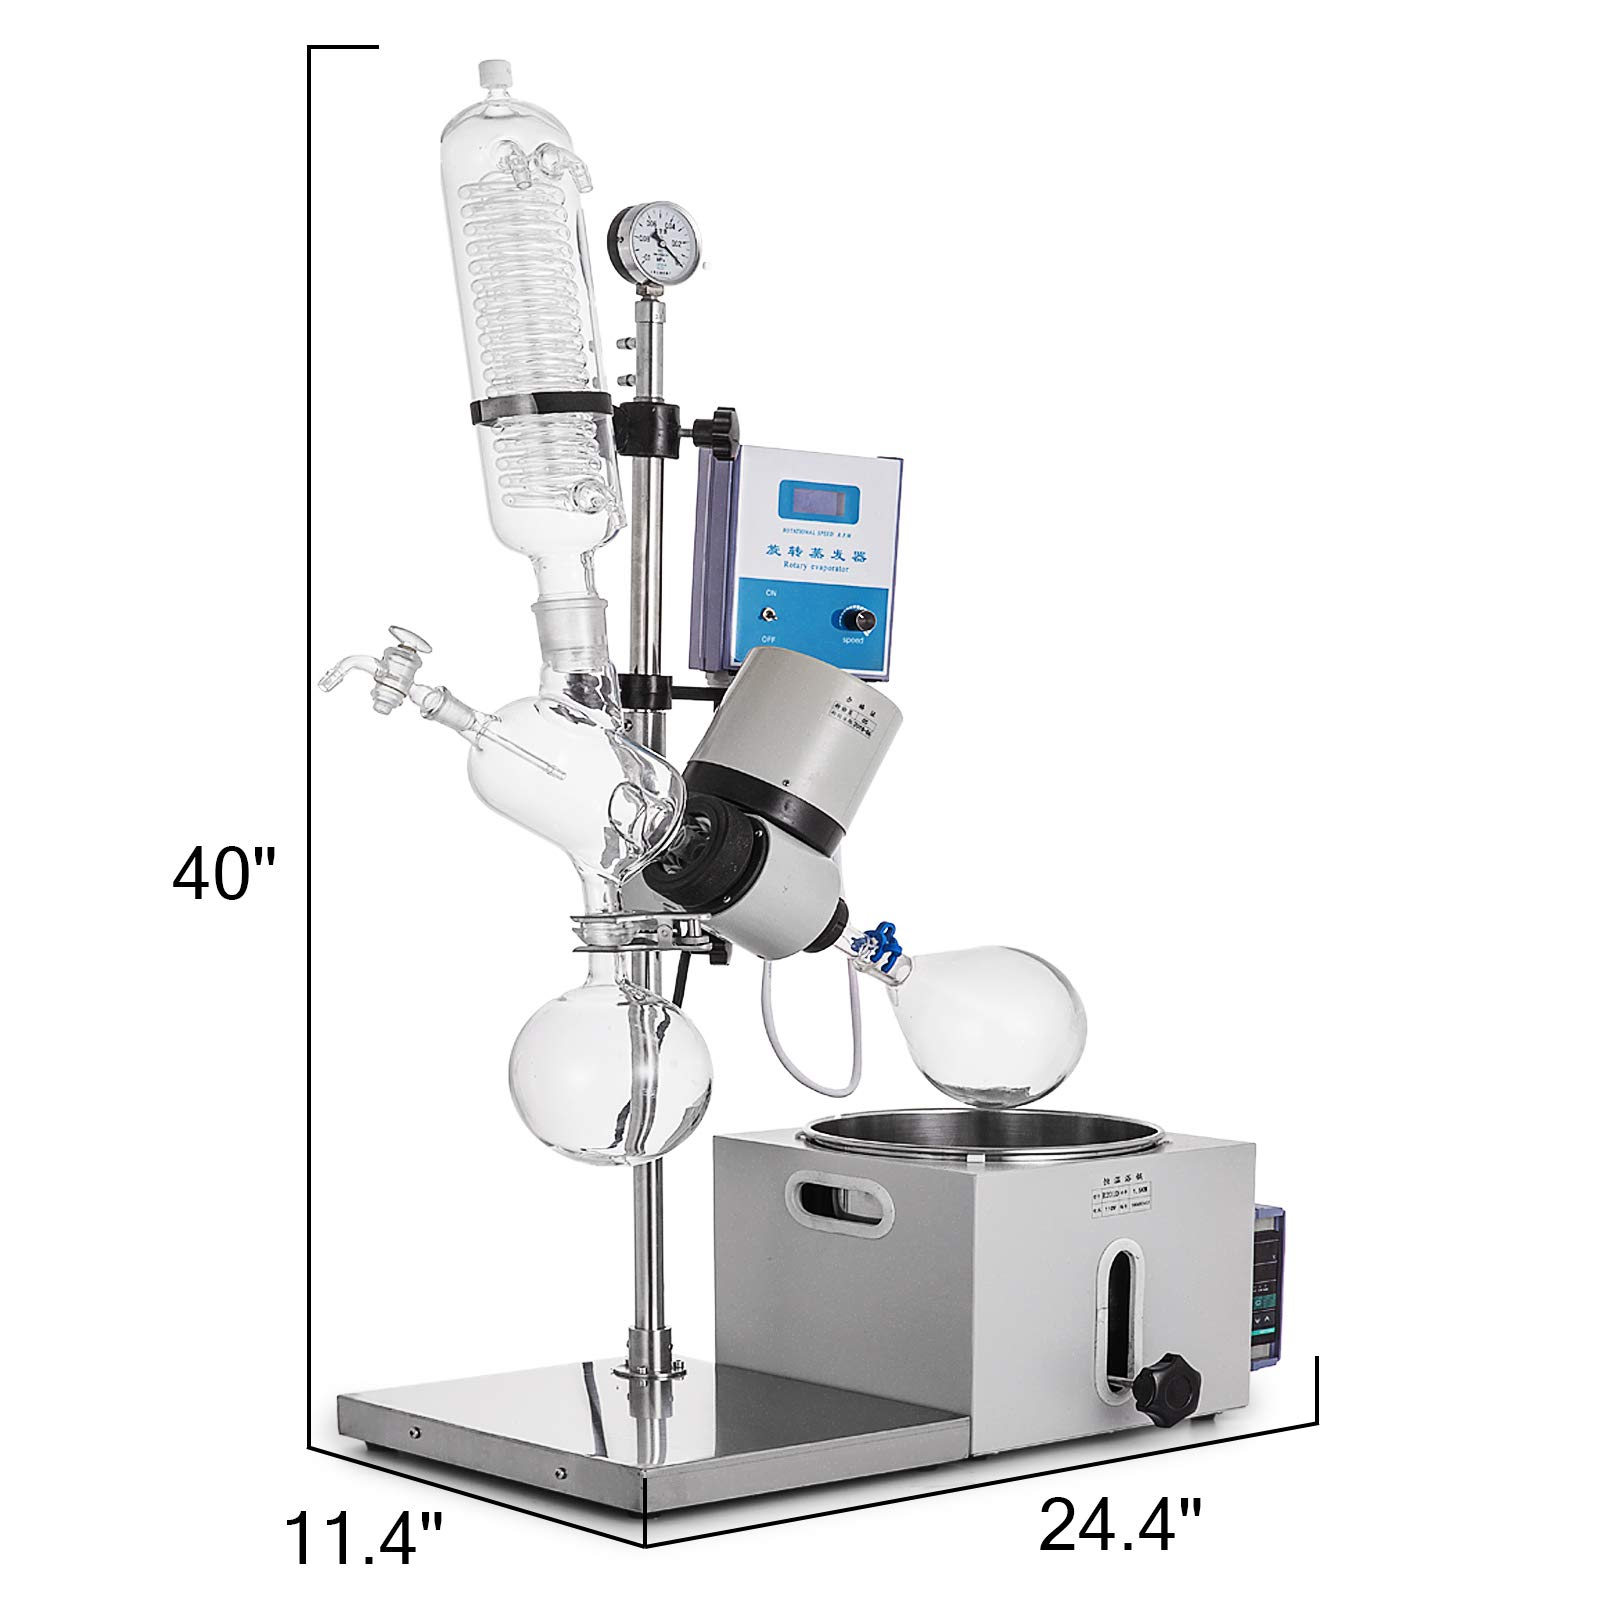 Mophorn 2L Rotary Evaporator R201D Lab Evaporator Rotary Evaporator Manual Lifting Rotavapor with LCD Screen 5-140rpm Professional Rotary Evaporator Set(2L, 5-140rpm) by Mophorn (Image #4)